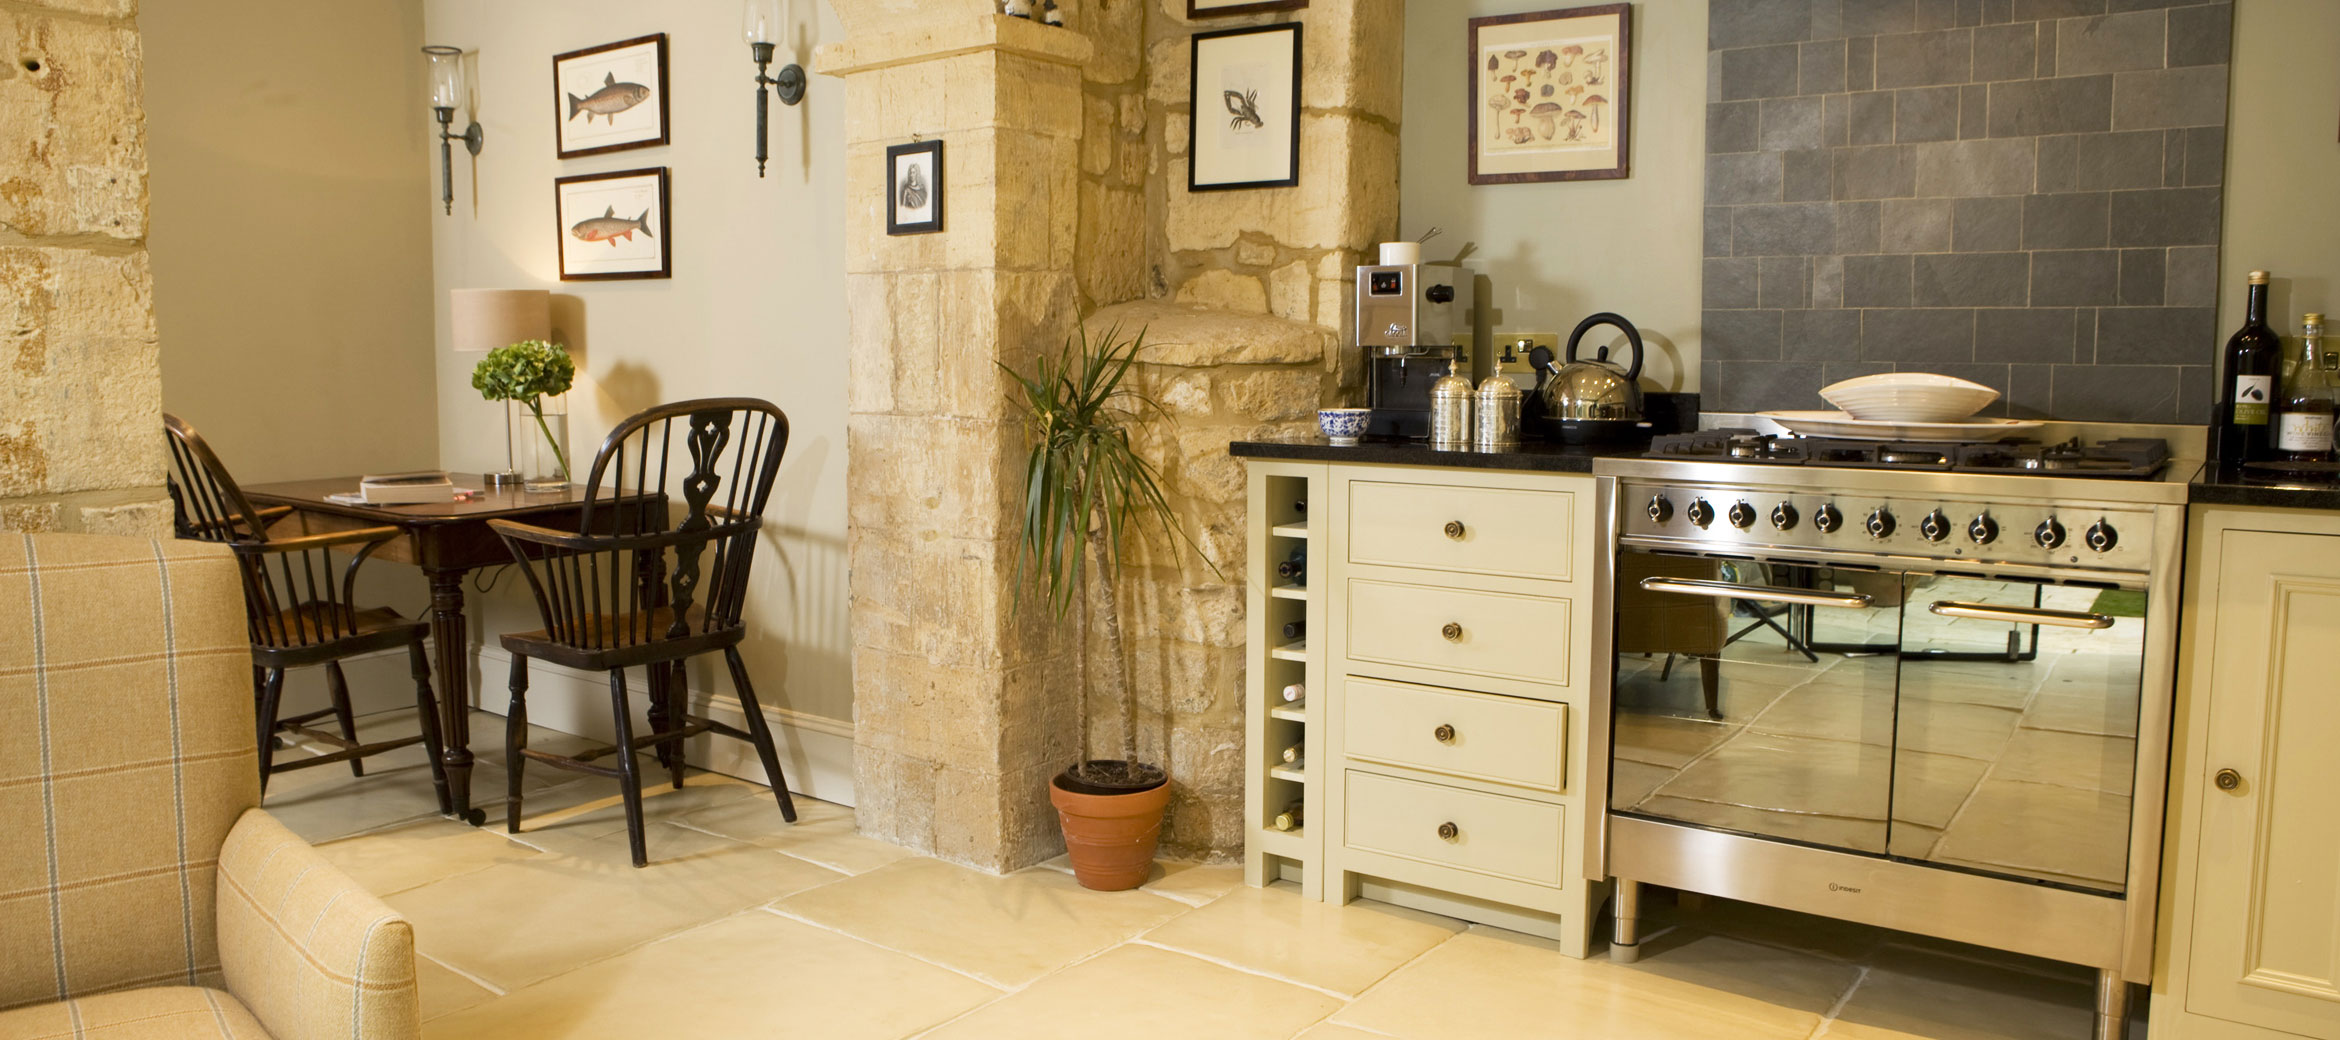 Singer-House-chipping-campden-kitchen-breakfast-room